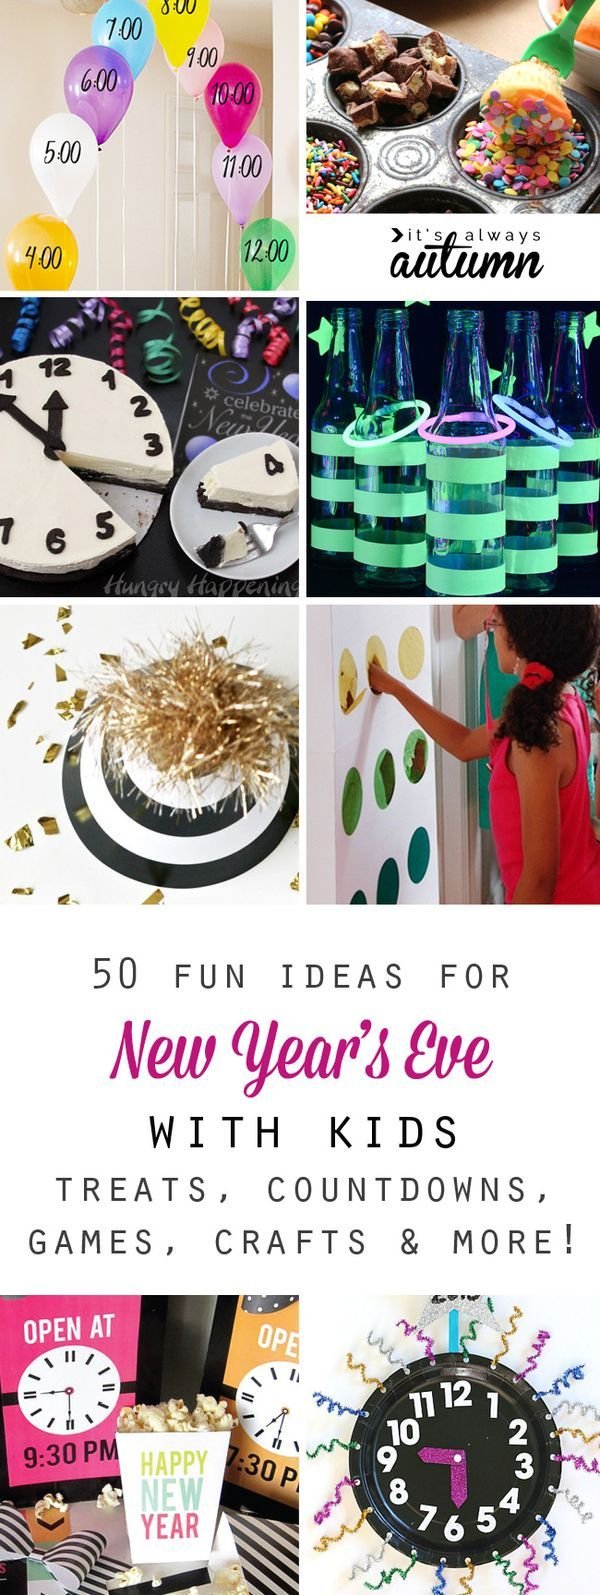 50 best ideas for celebrating New Year\'s Eve with kids | Pinterest ...